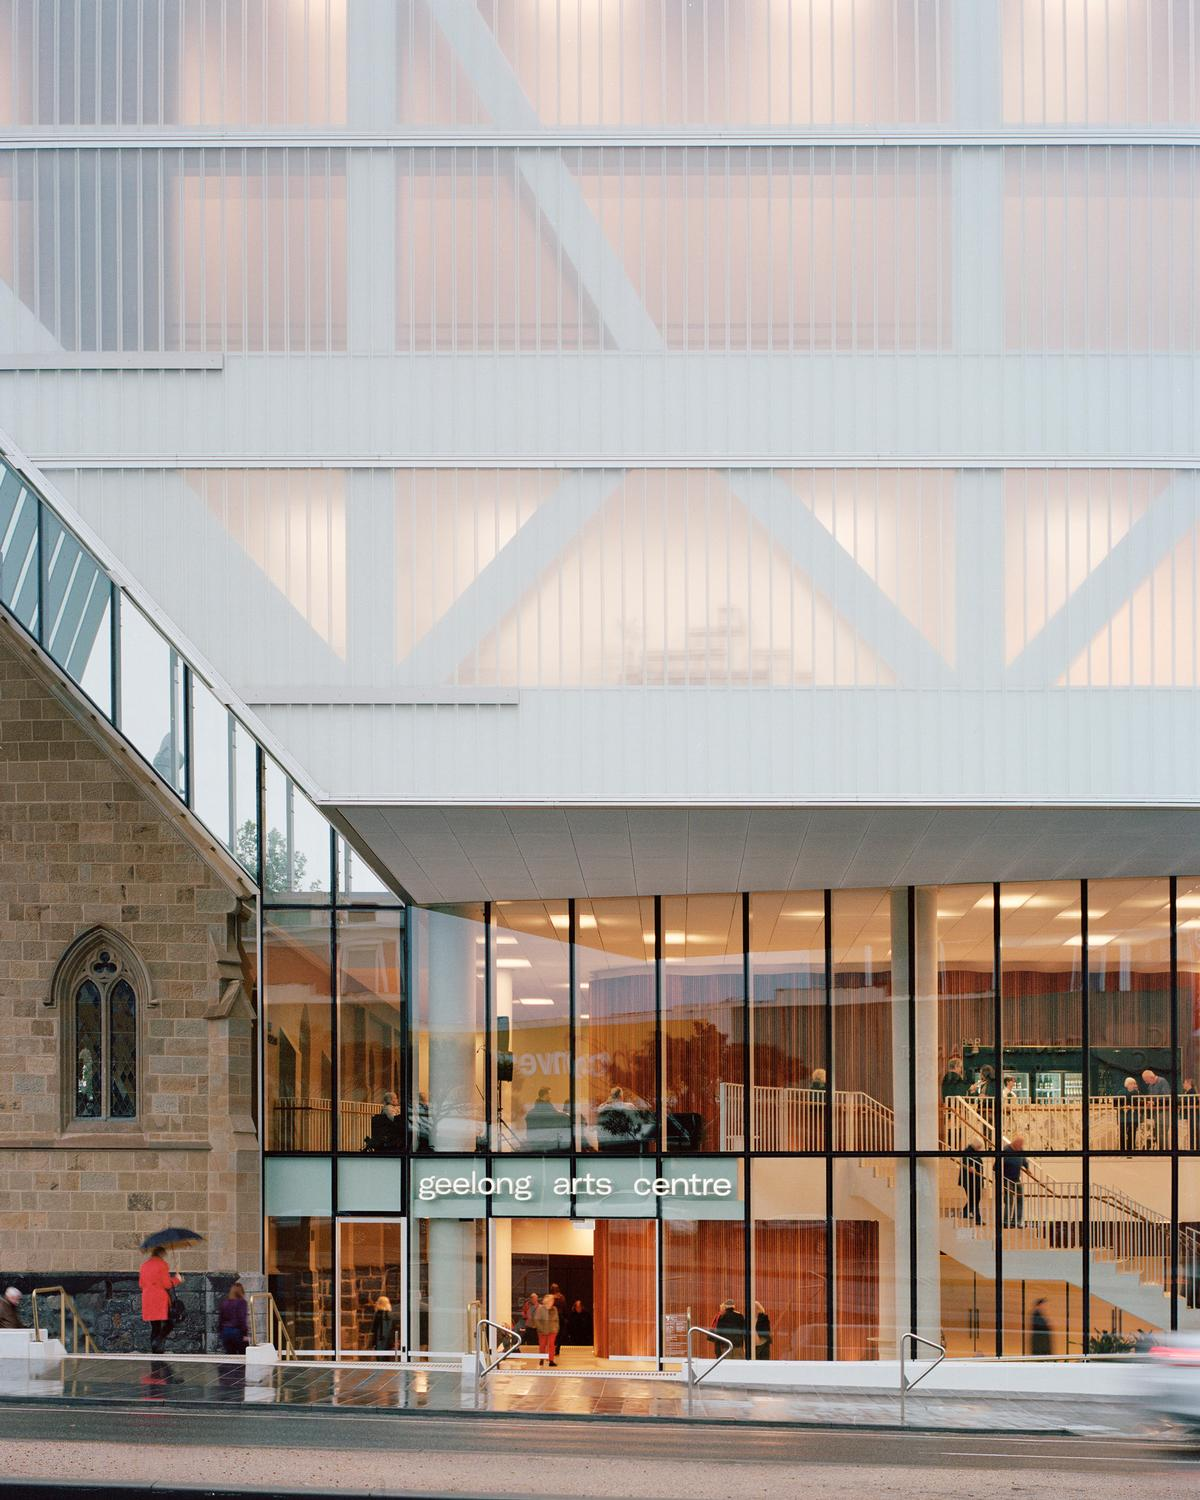 The glazed lower portion of the arts centre and the translucent upper portion provide visibility of what is going on inside / Rory Gardiner